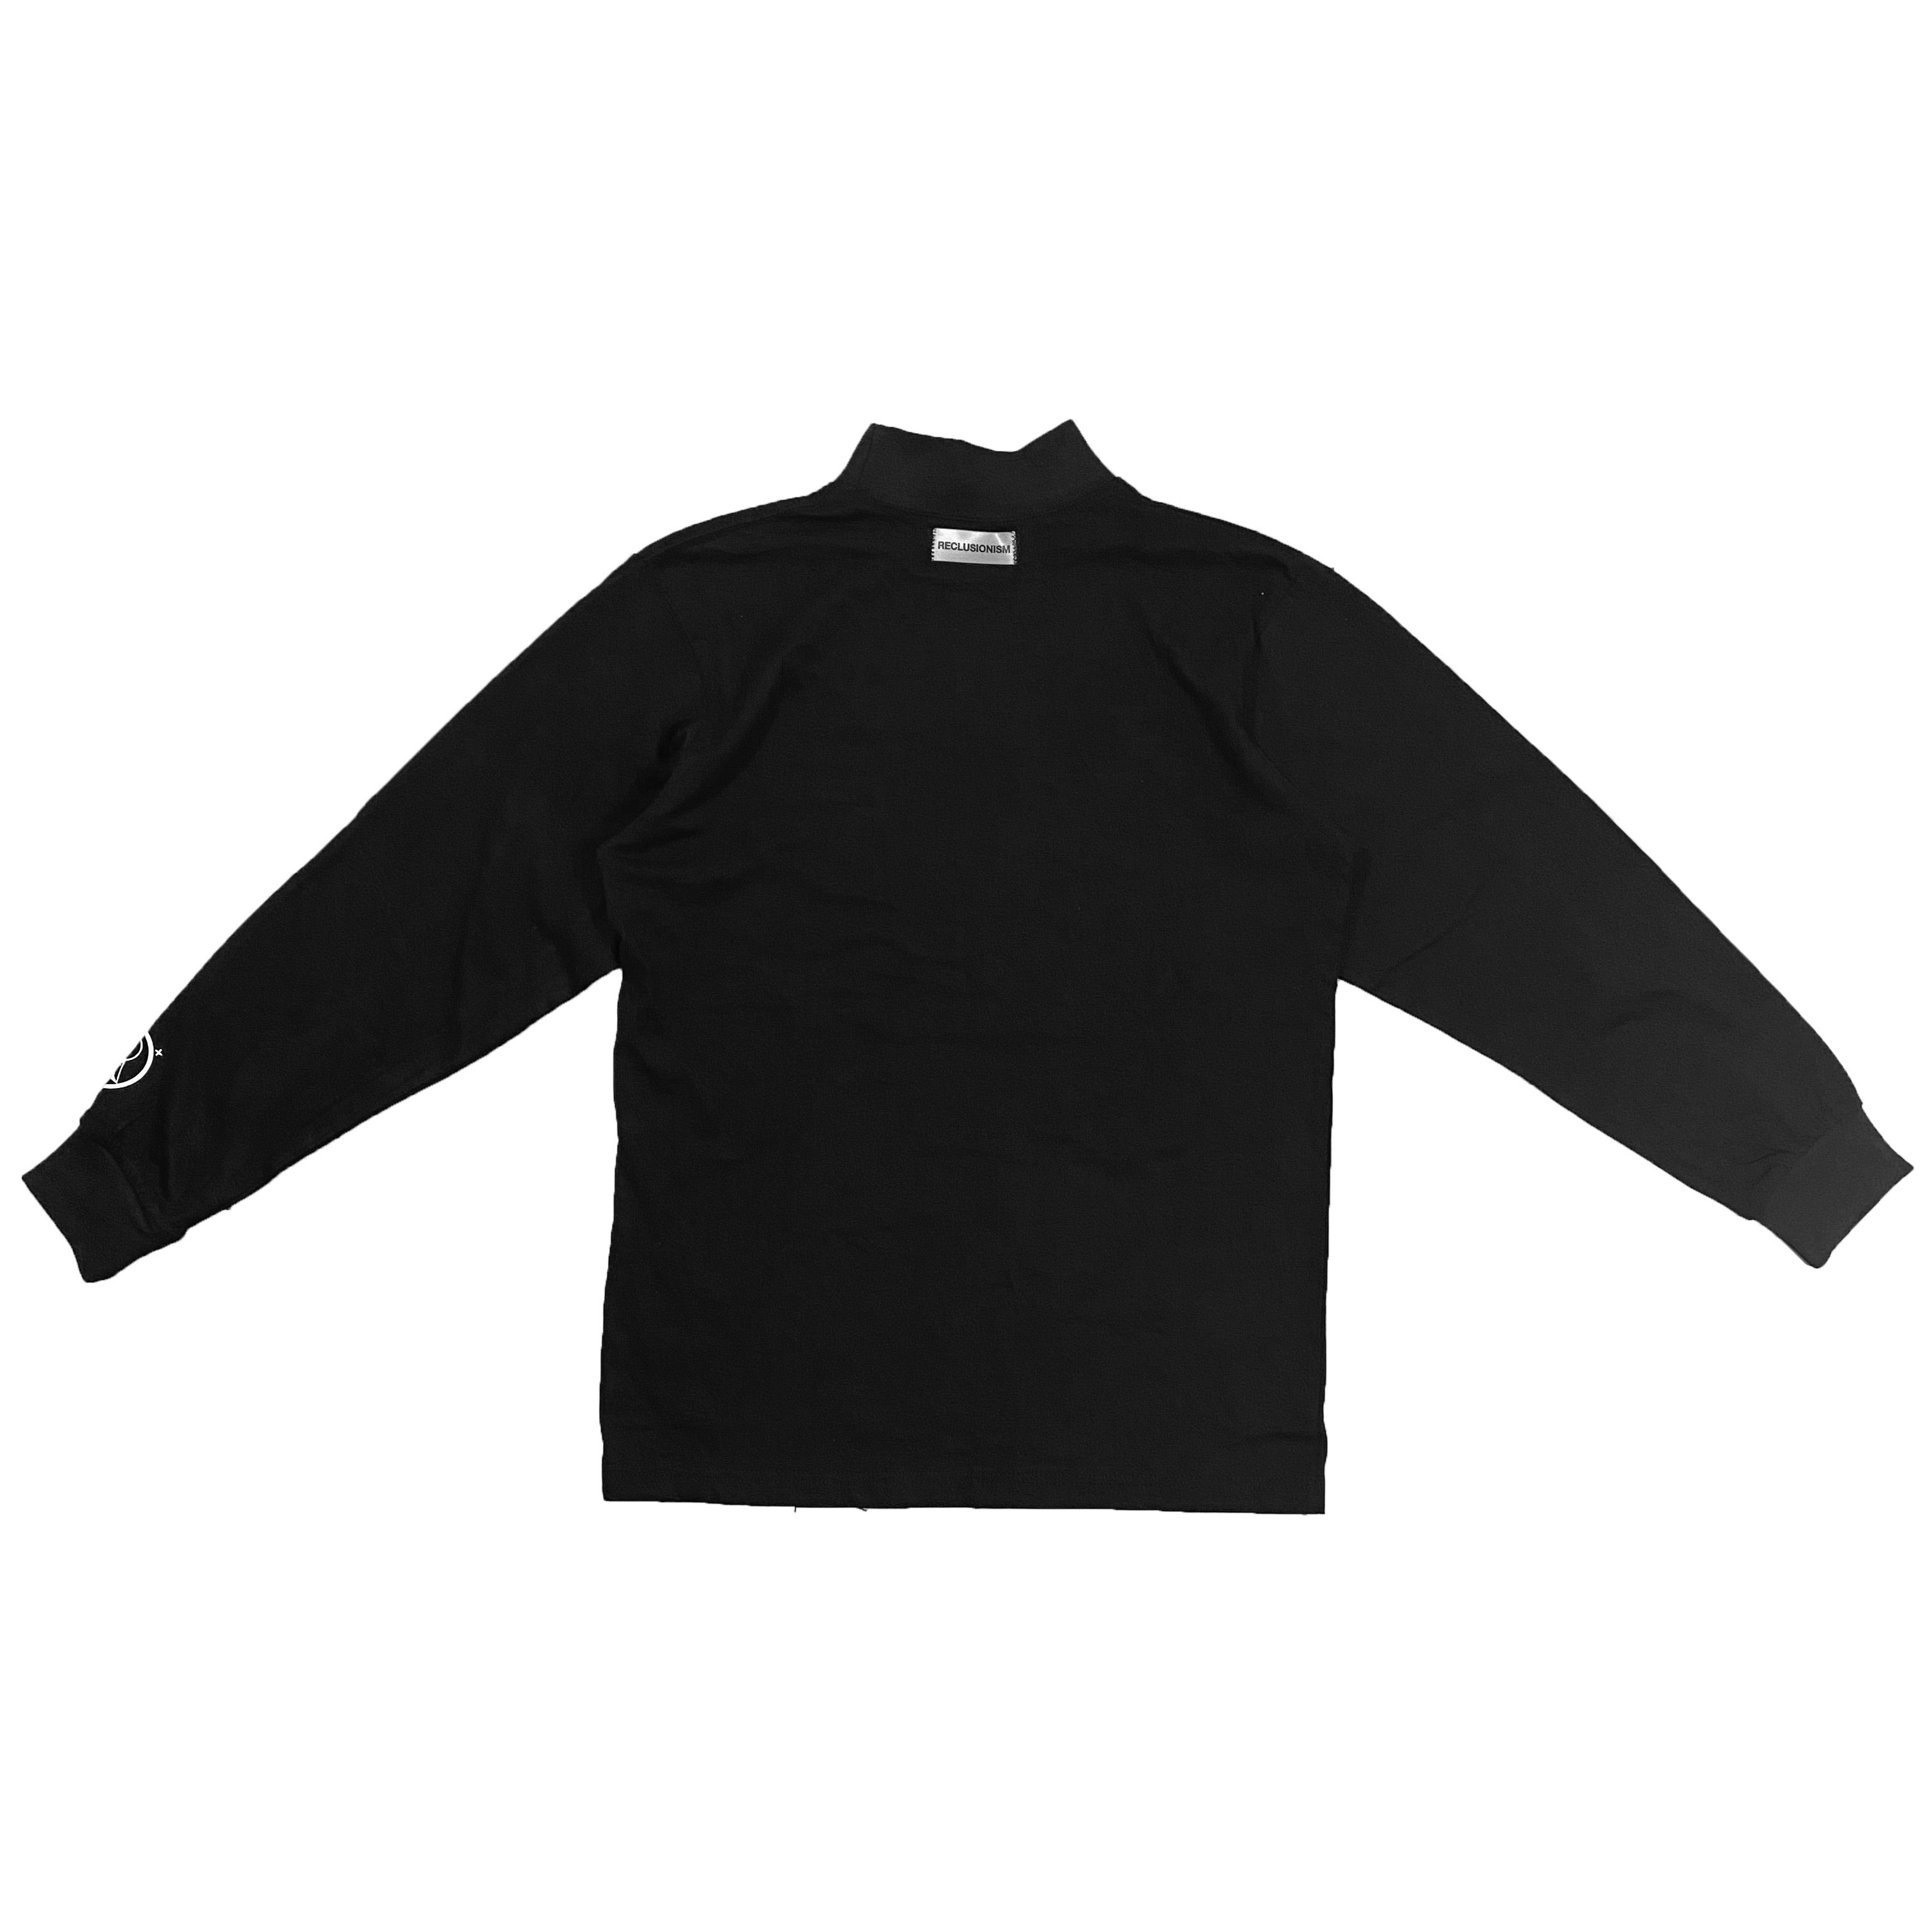 SIGNATURE MOCK NECK